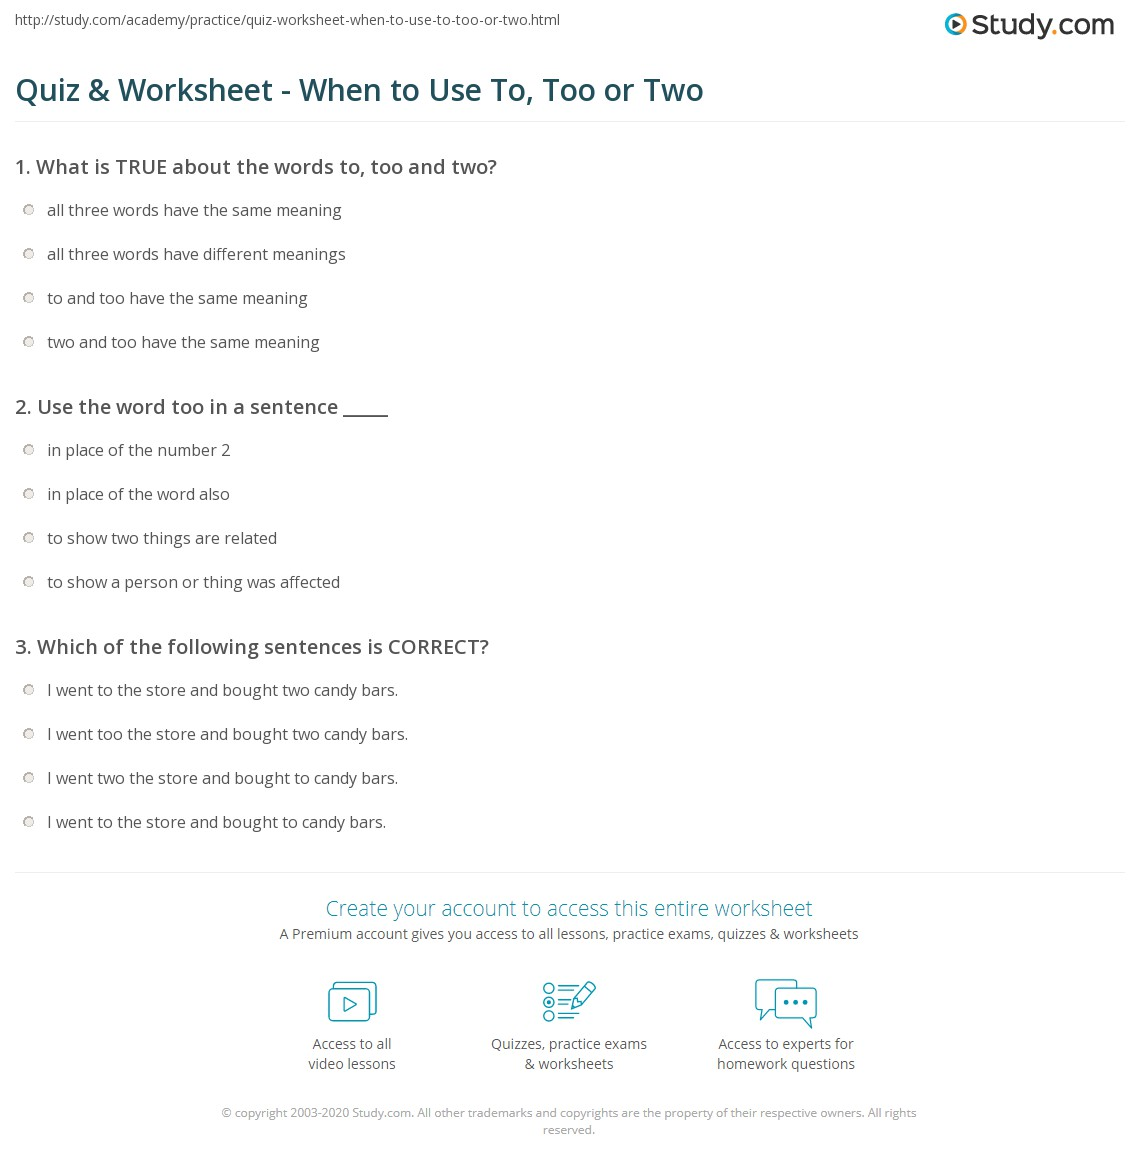 Workbooks to too and two worksheets : Quiz & Worksheet - When to Use To, Too or Two | Study.com